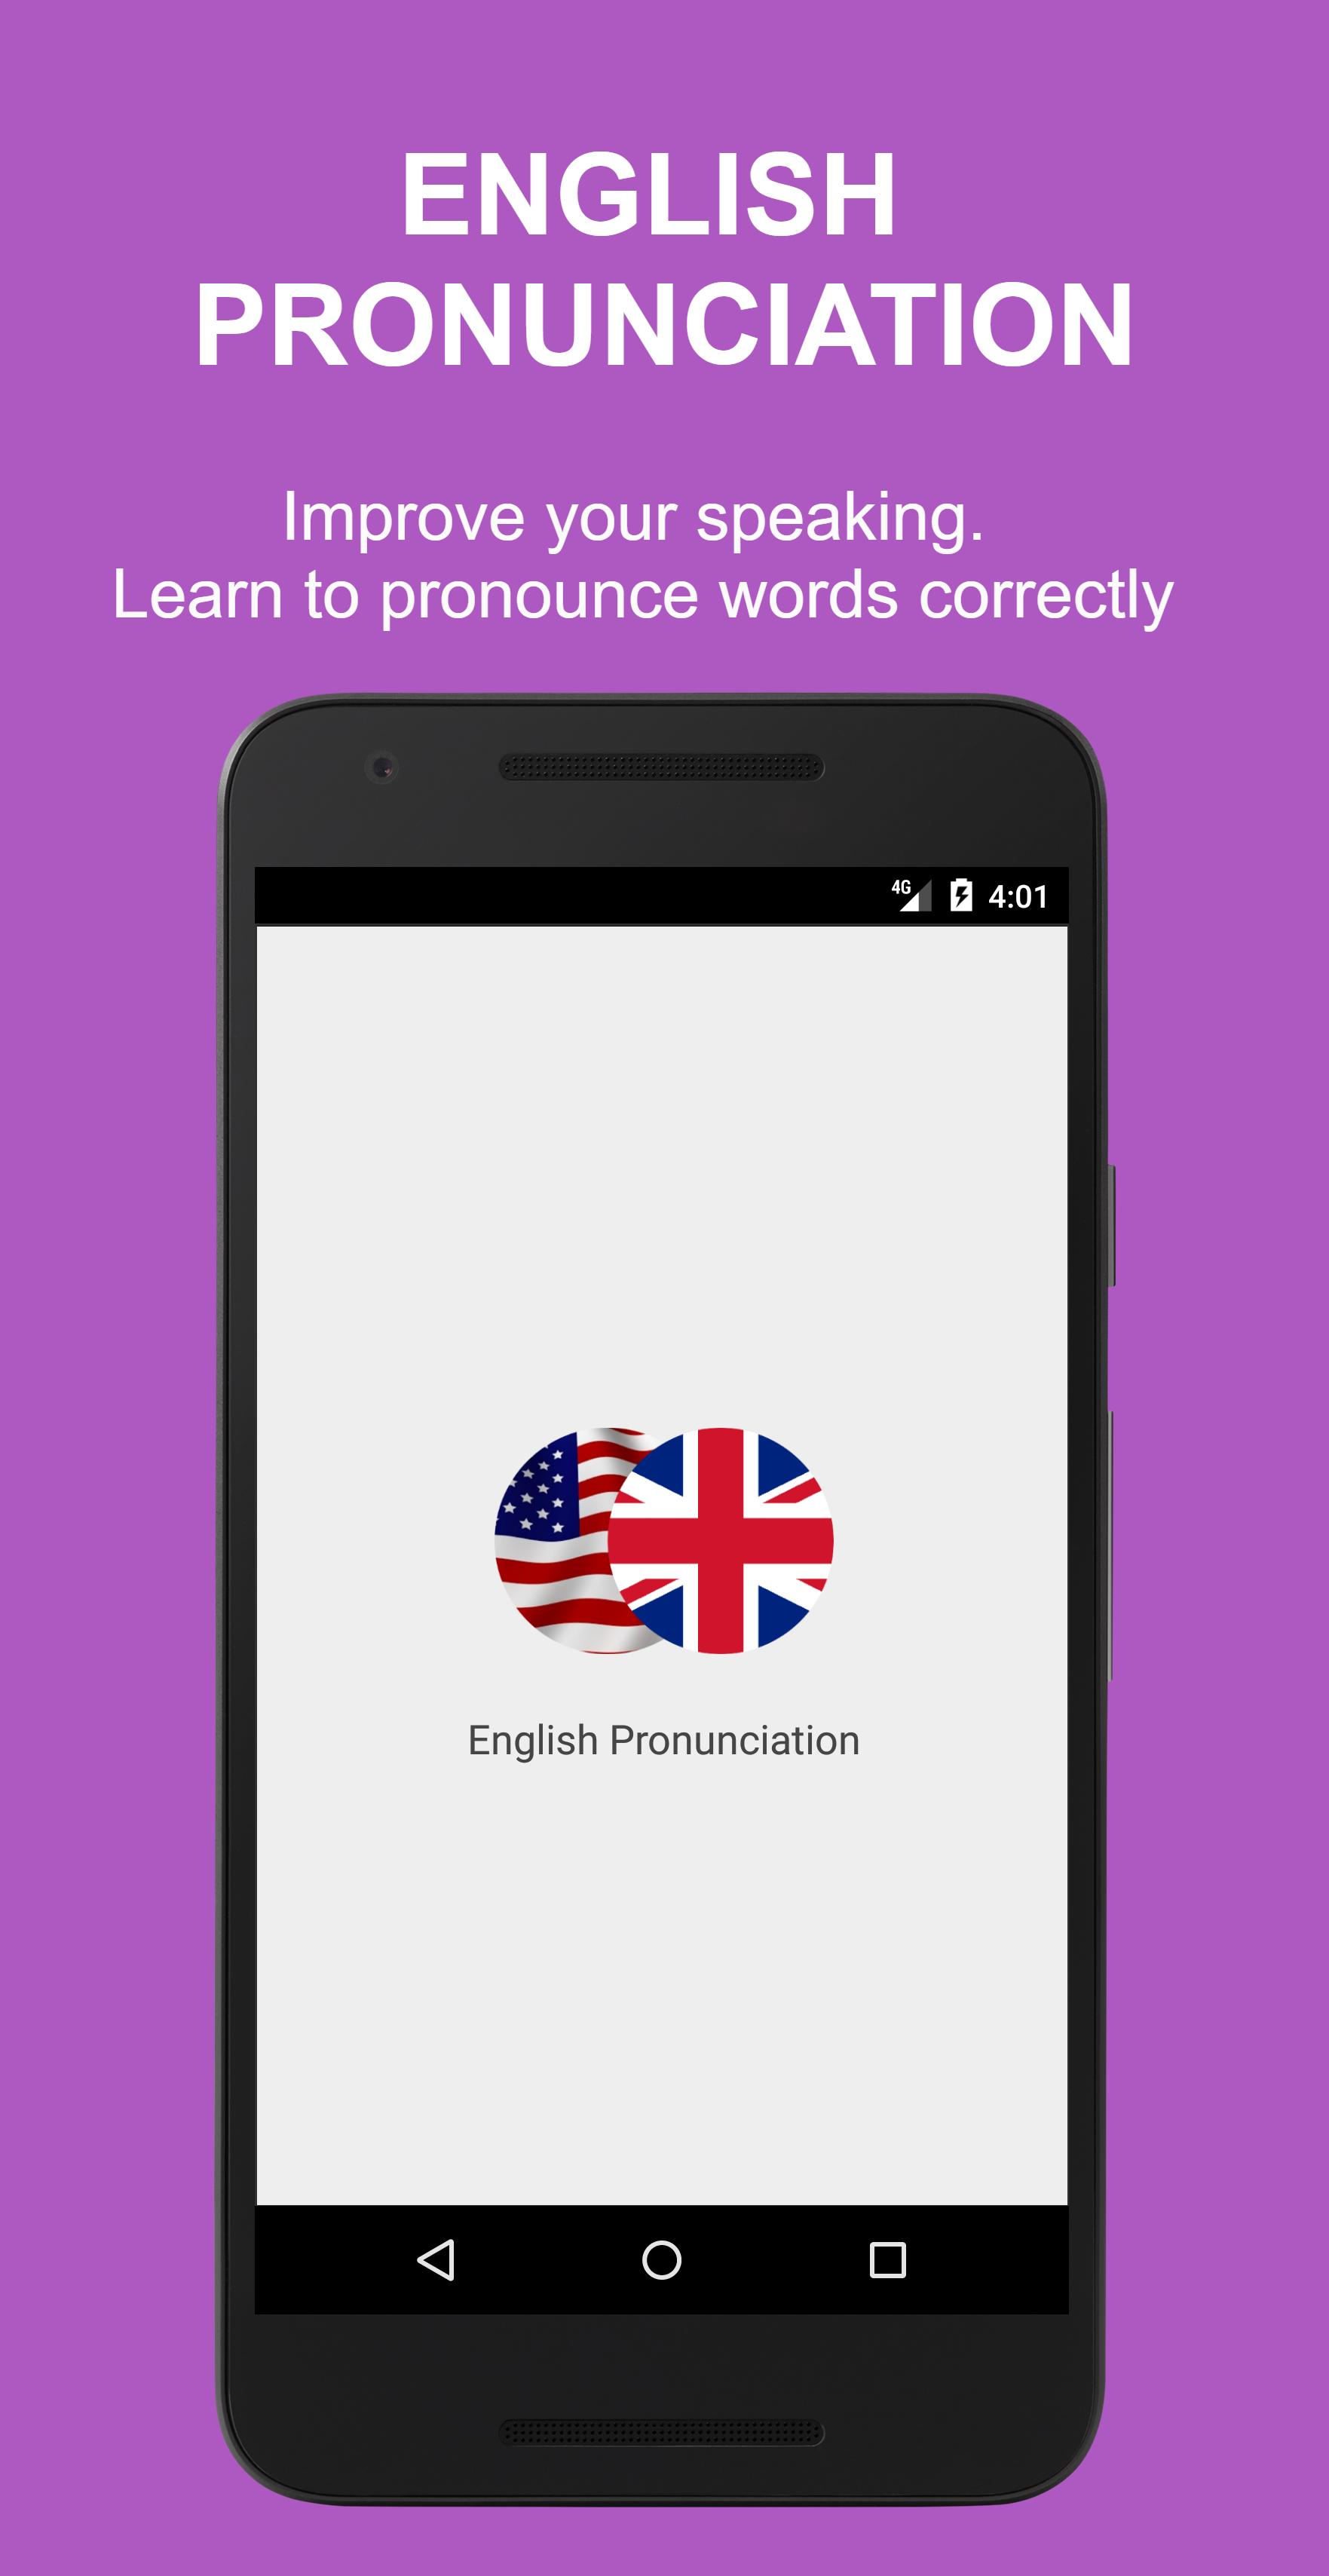 English Pronunciation for Android - APK Download